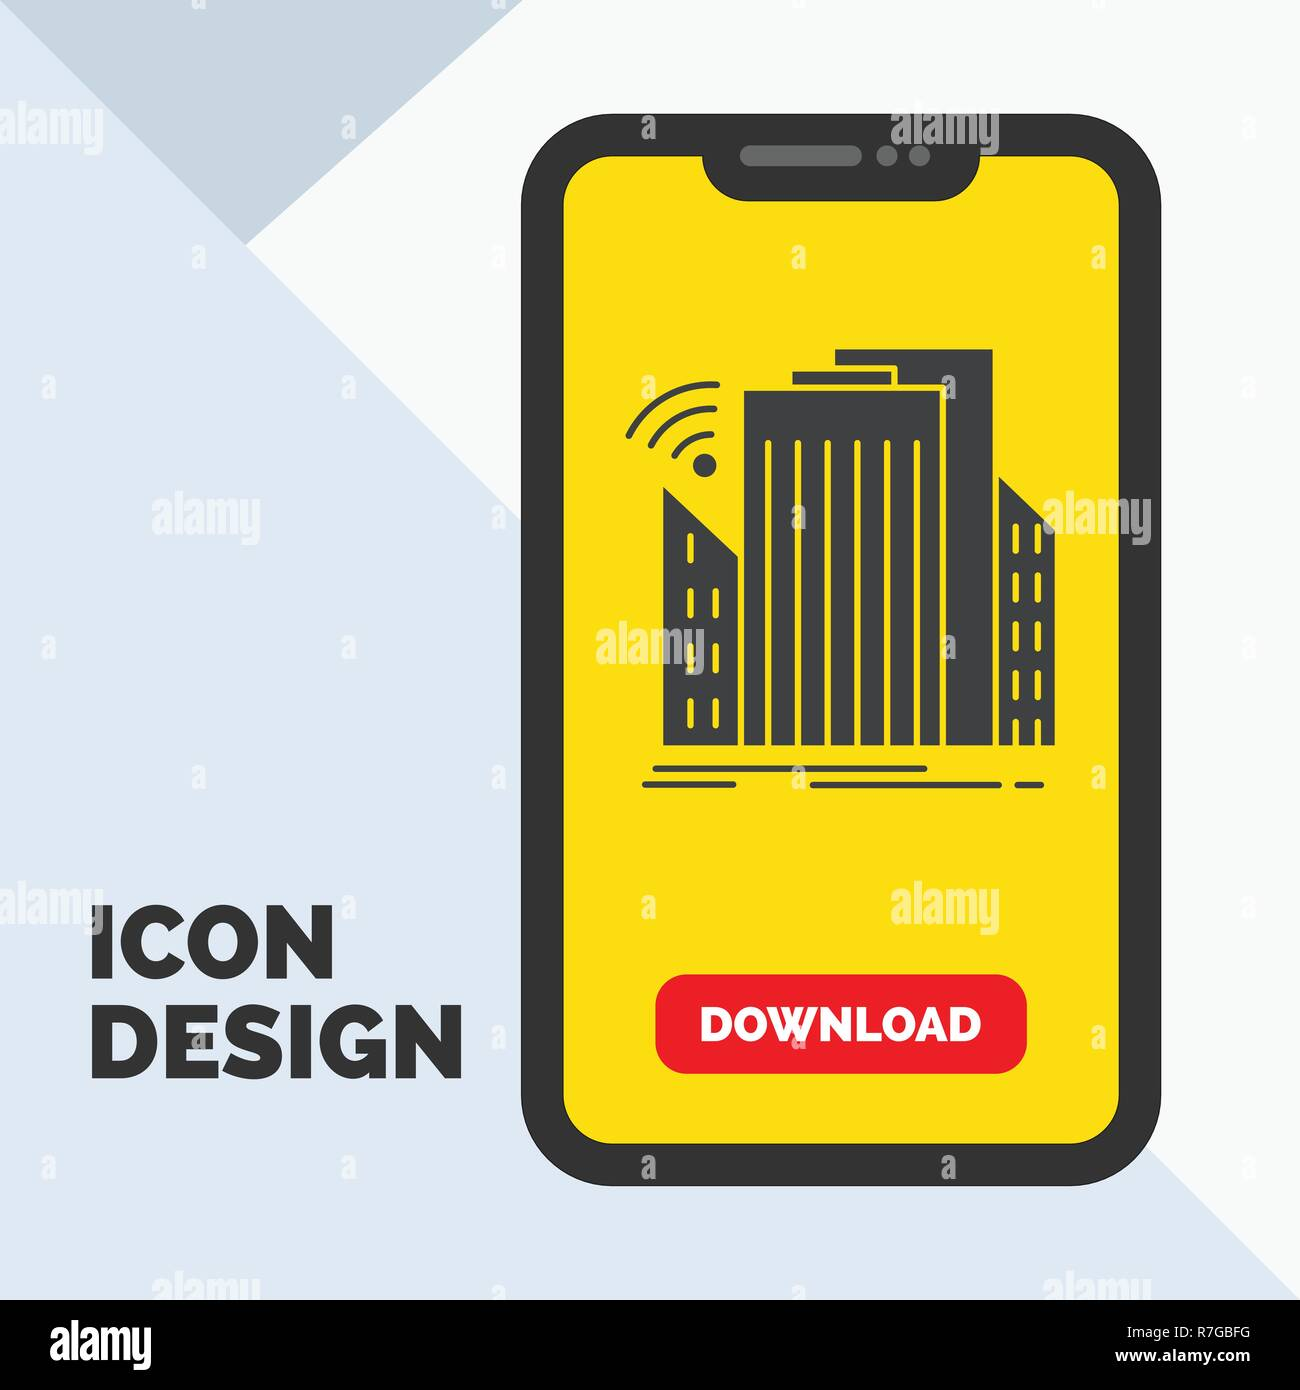 Buildings, city, sensor, smart, urban Glyph Icon in Mobile for Download Page. Yellow Background - Stock Vector